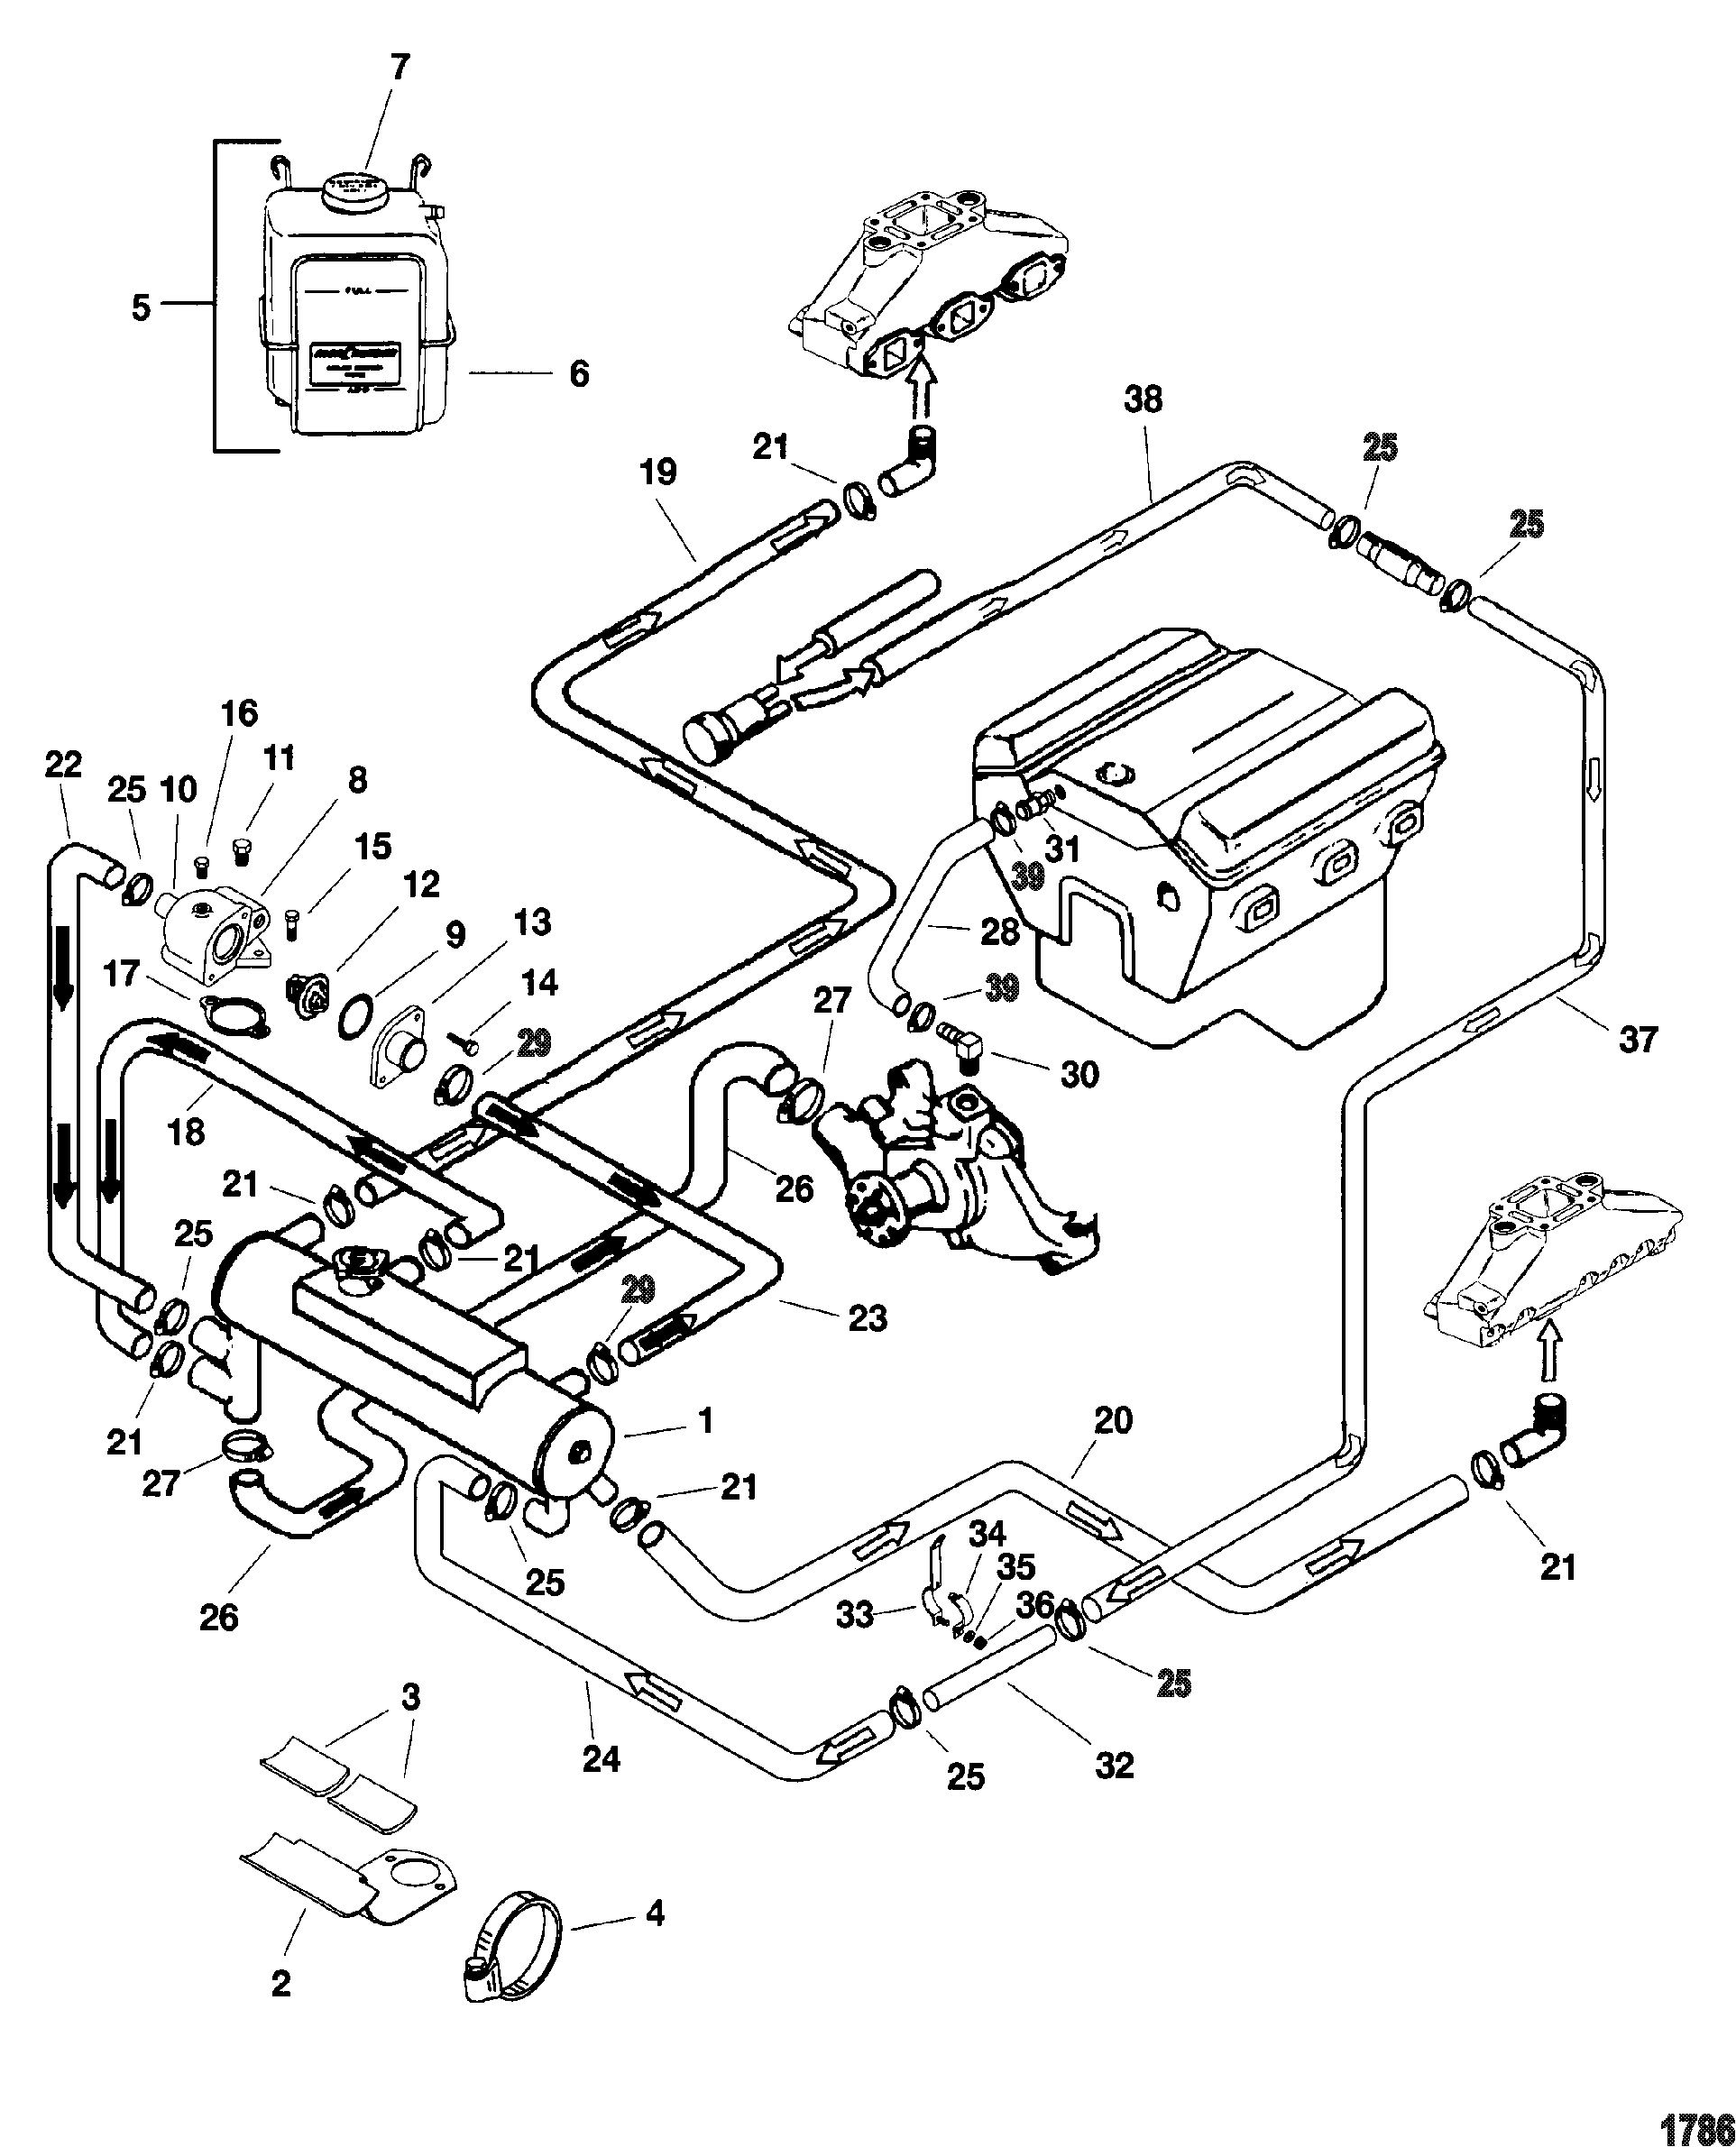 [WRG-4500] 2004 Dodge Grand Caravan Engine Diagram